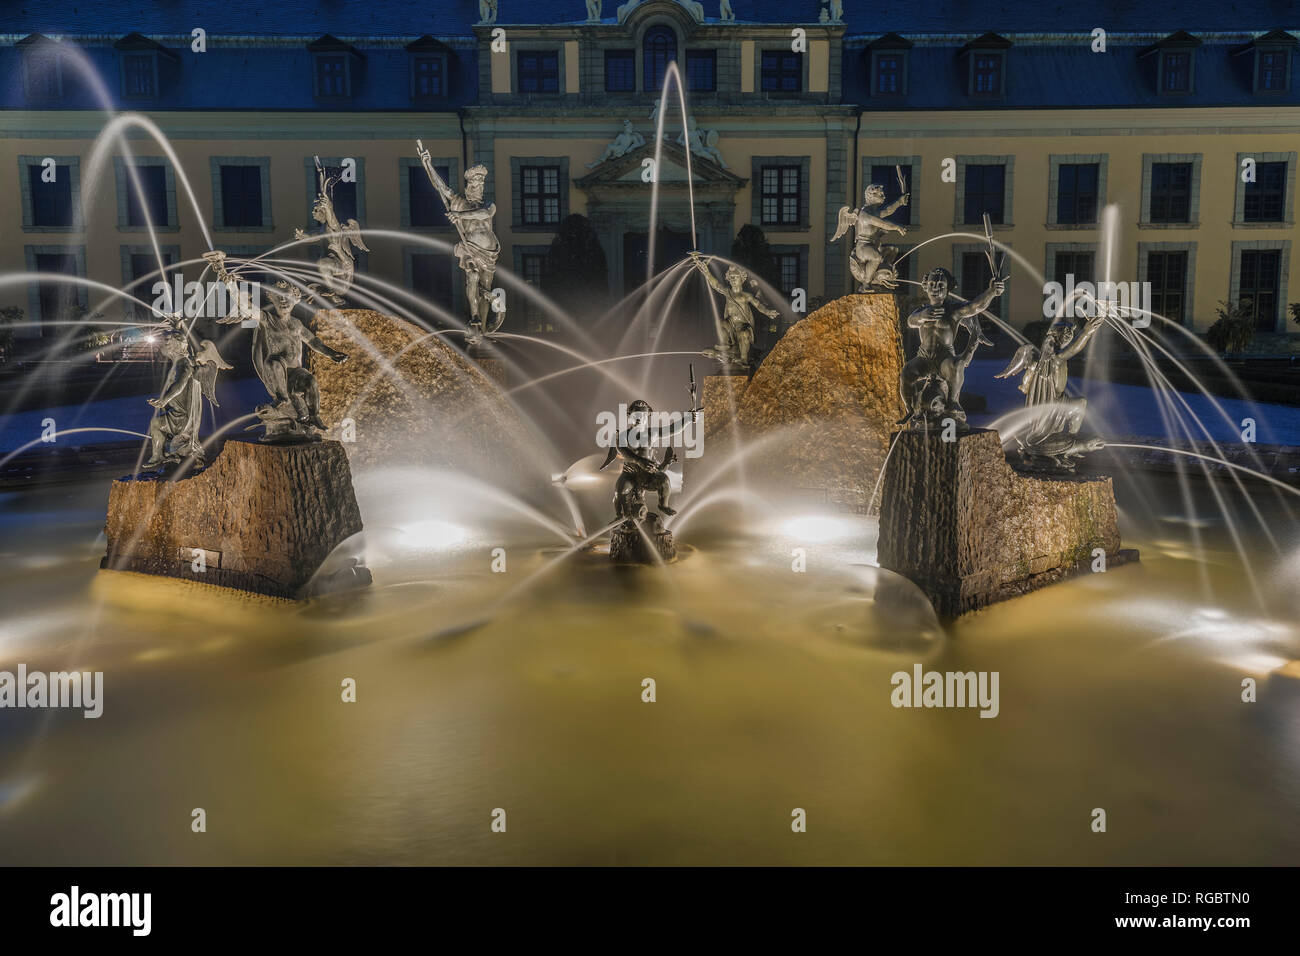 Illumination Of The Gardens Of Herrenhausen Stock Photos